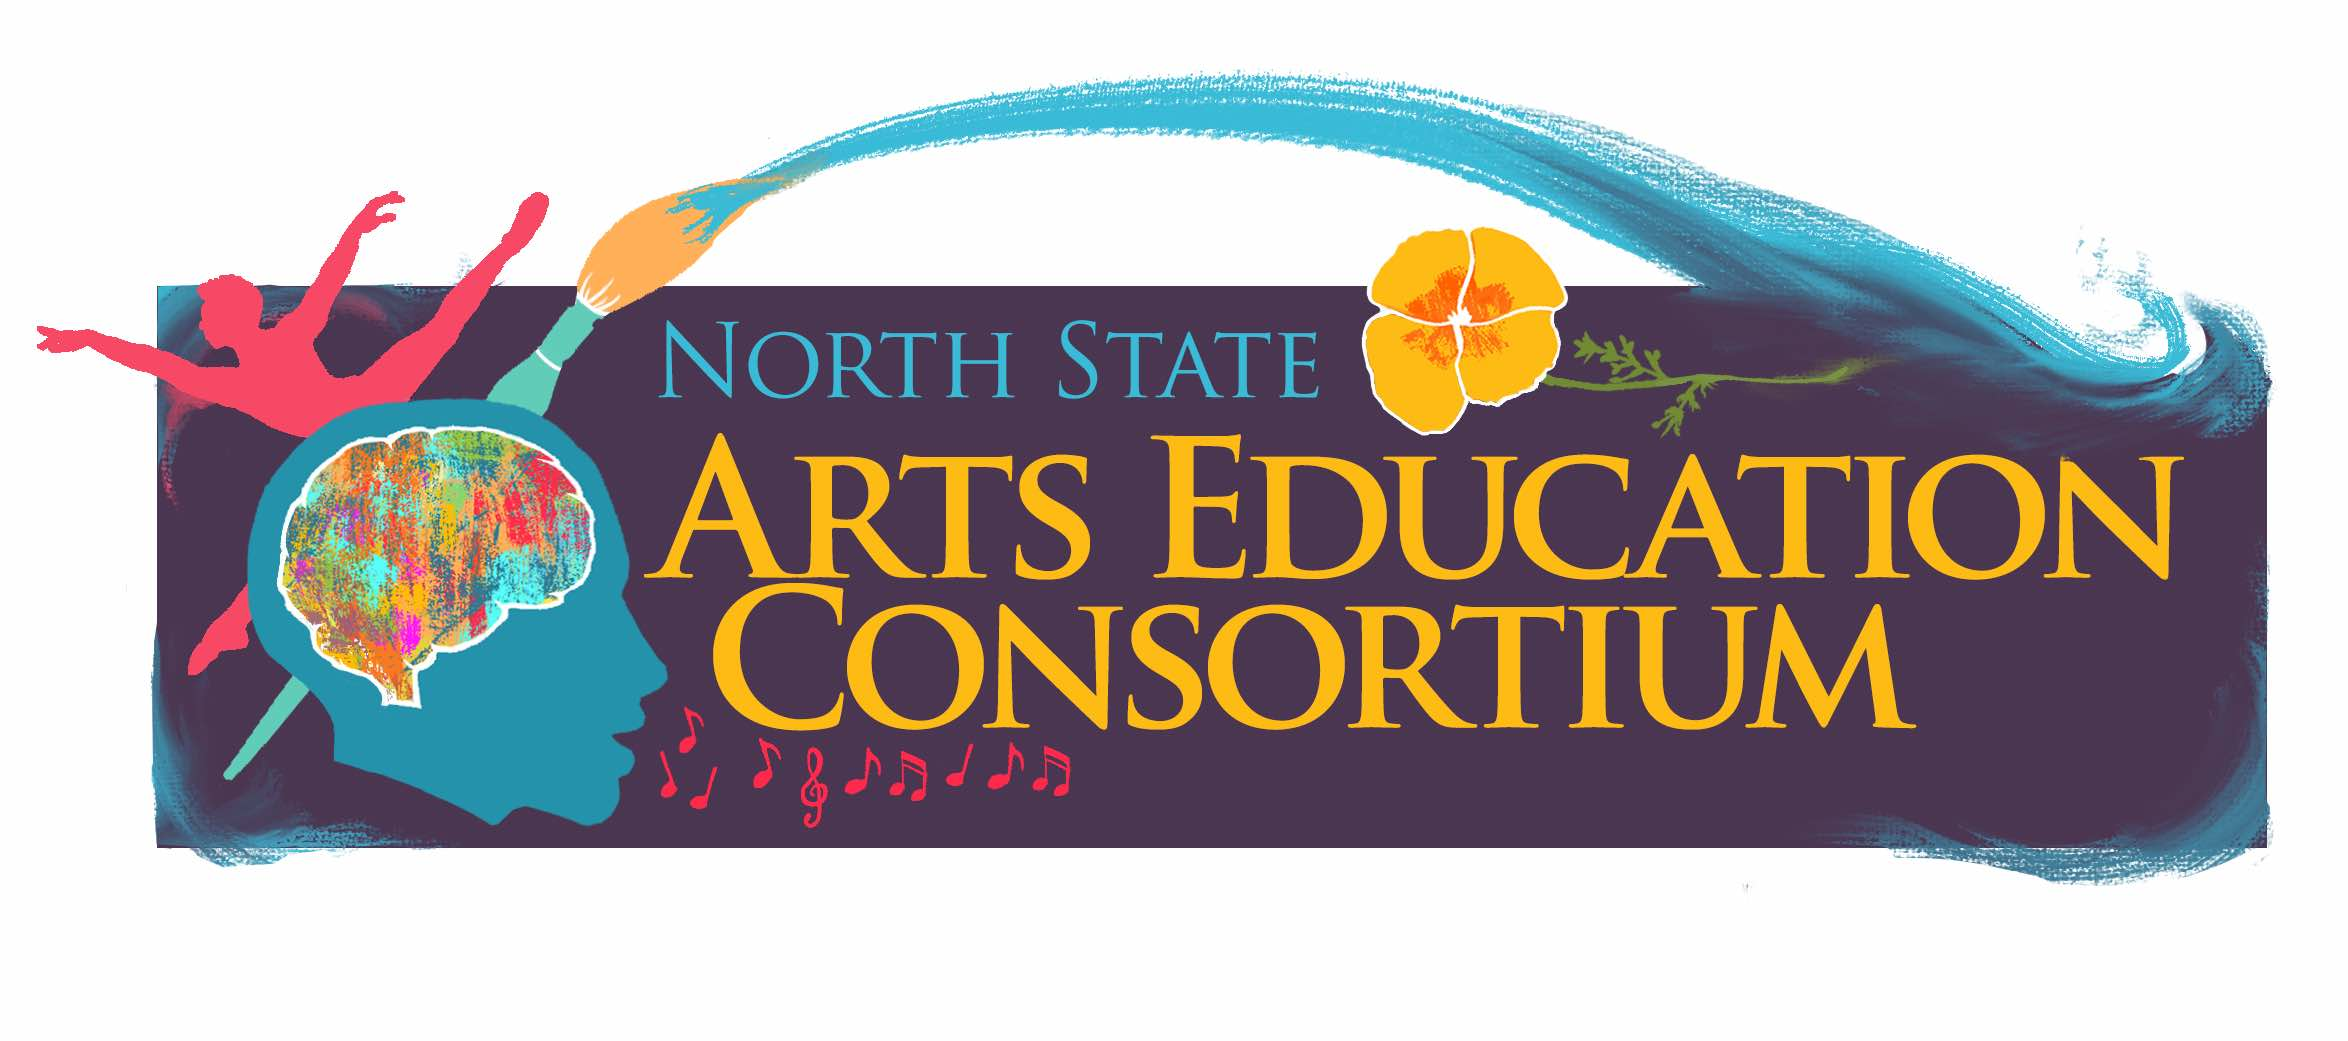 North State Arts Education Consortium